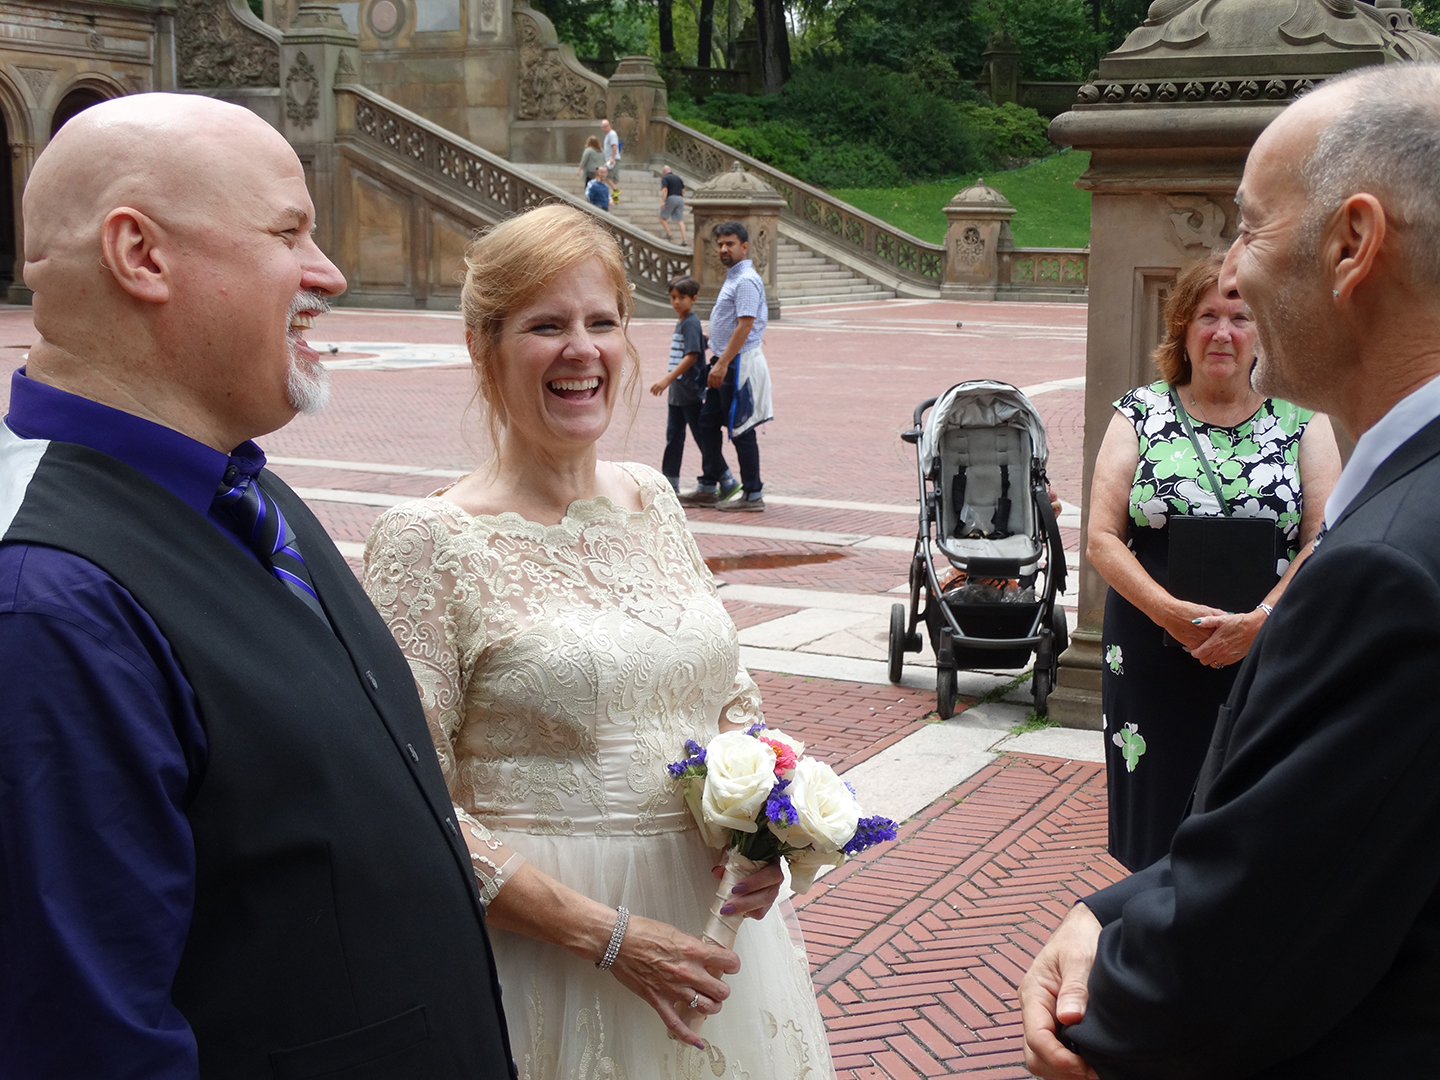 Greg Illig & Laura Hipkiss Wedding 8-11-2015 (3).JPG